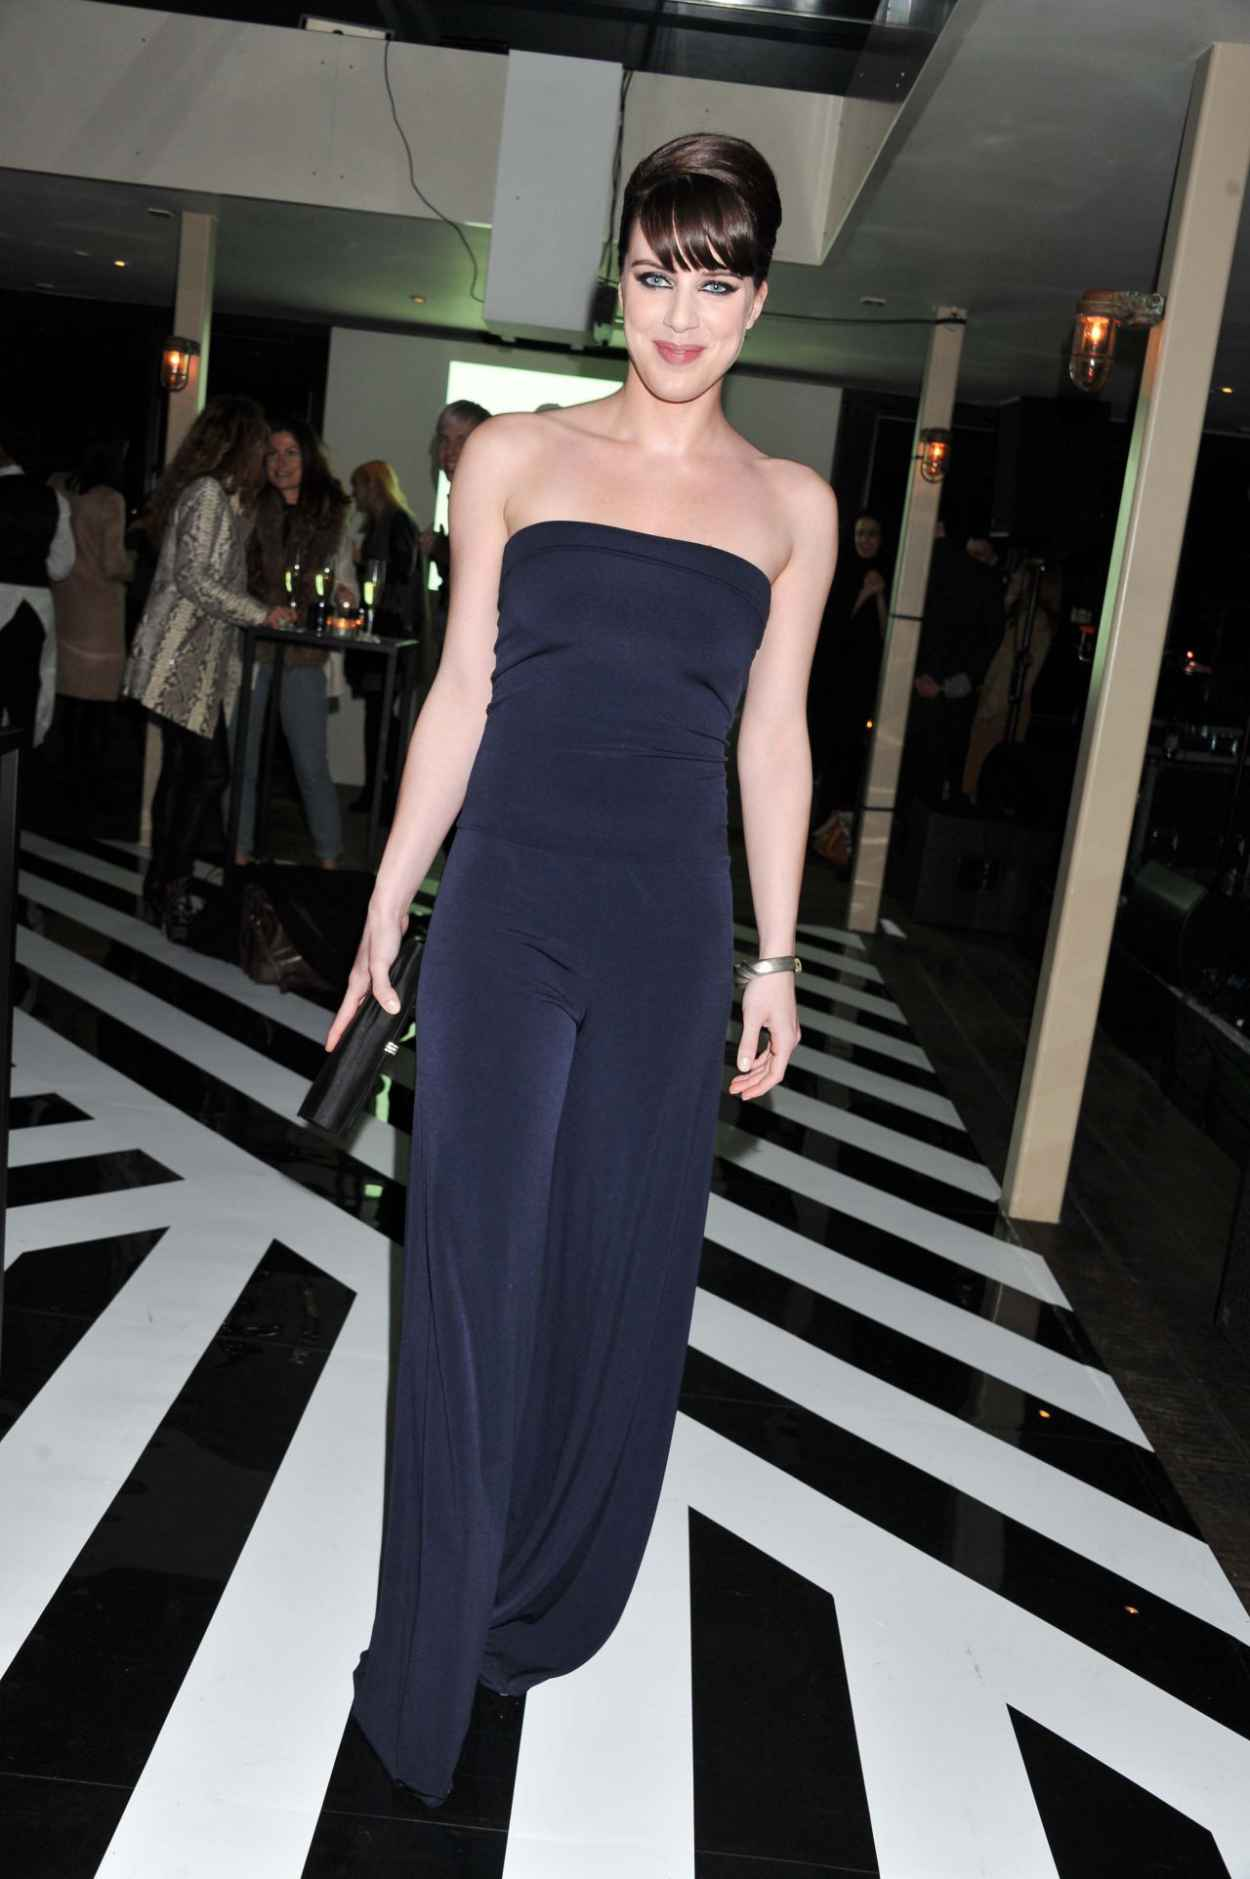 Michelle Ryan Wears Busty Blue Dress at Instyle Best Of British Talent Party Awards 2015-1